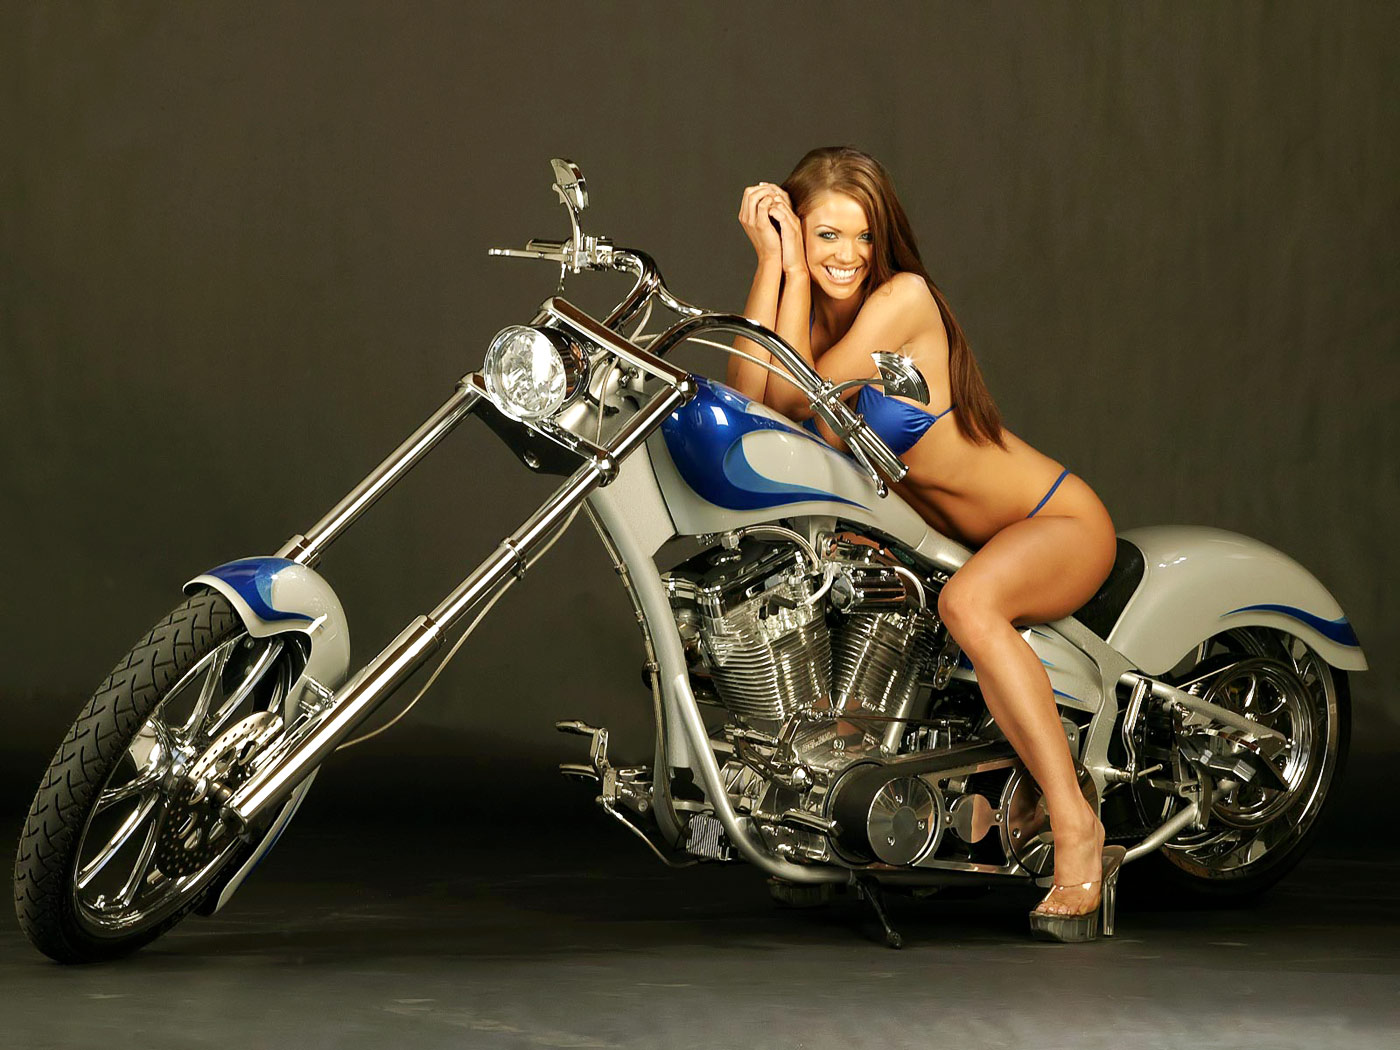 Touching words Custom chopper motorcycles and girls